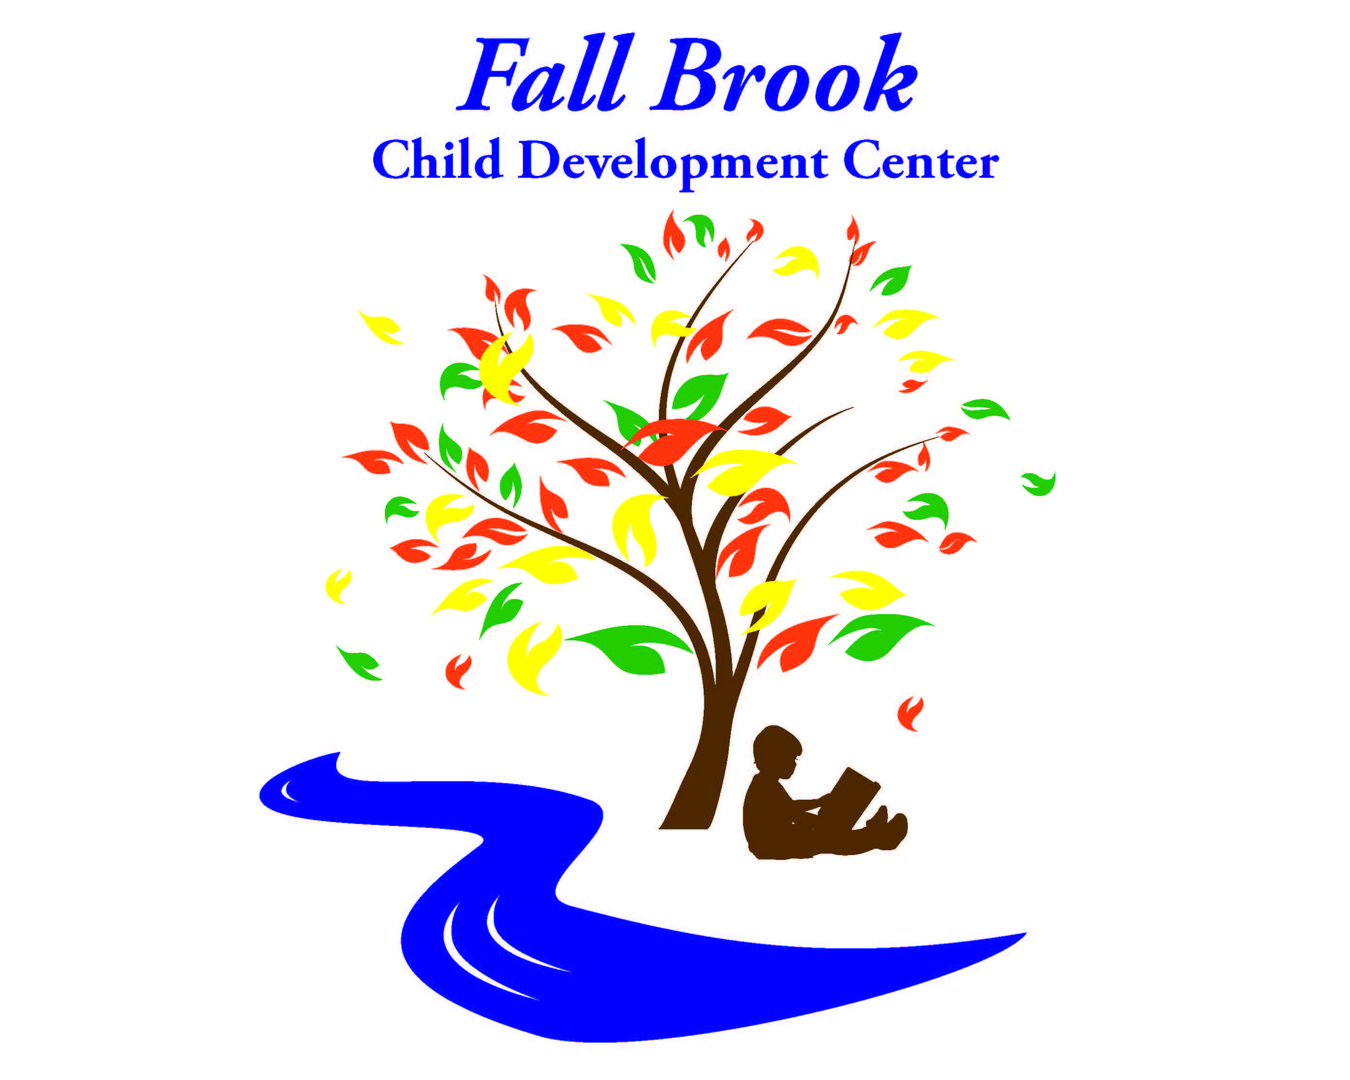 Fall Brook Child Development Center